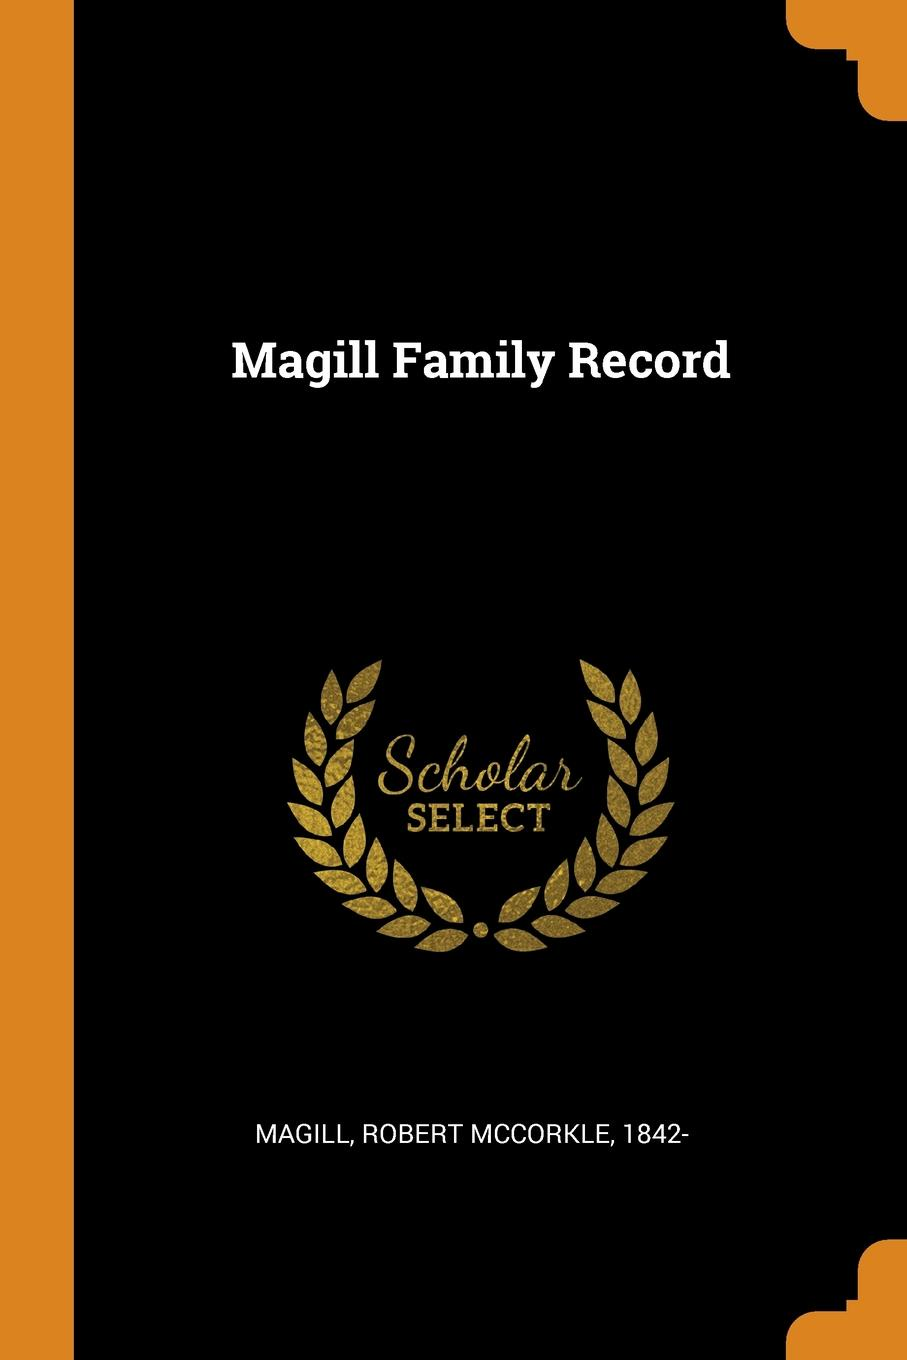 Magill Family Record